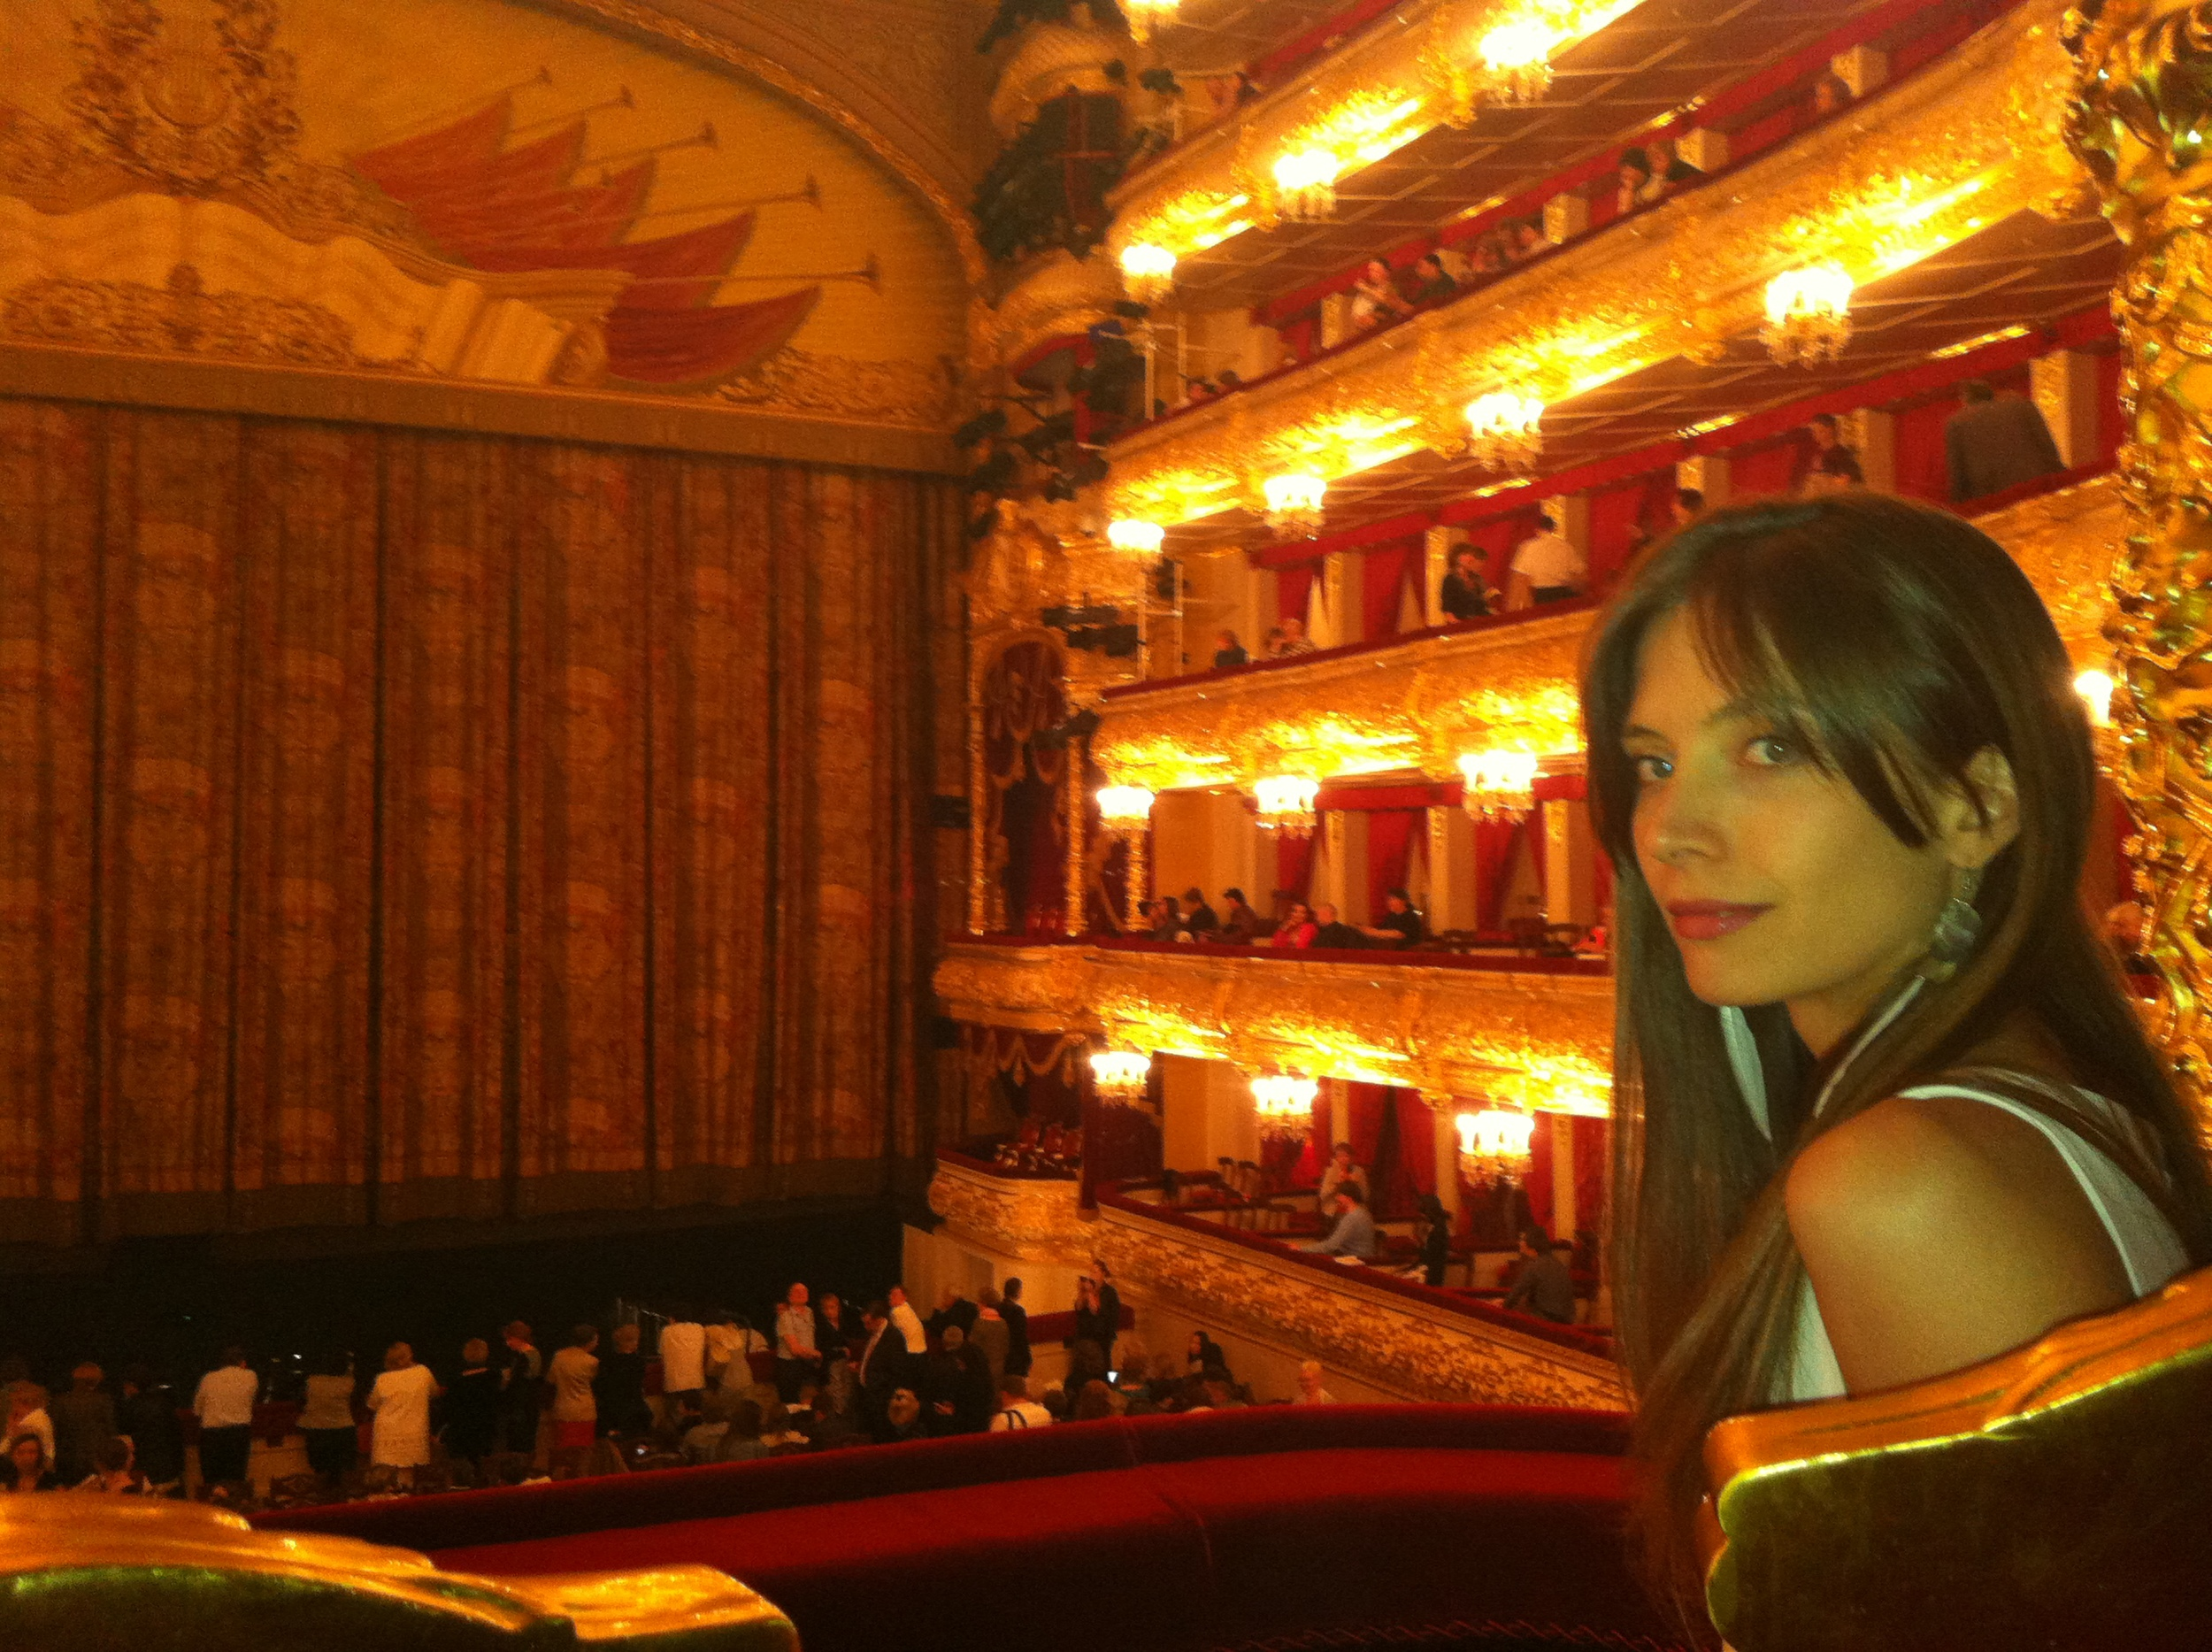 Erika was personally invited by the director of the Bolshoi theatre, here from the Putin lounge